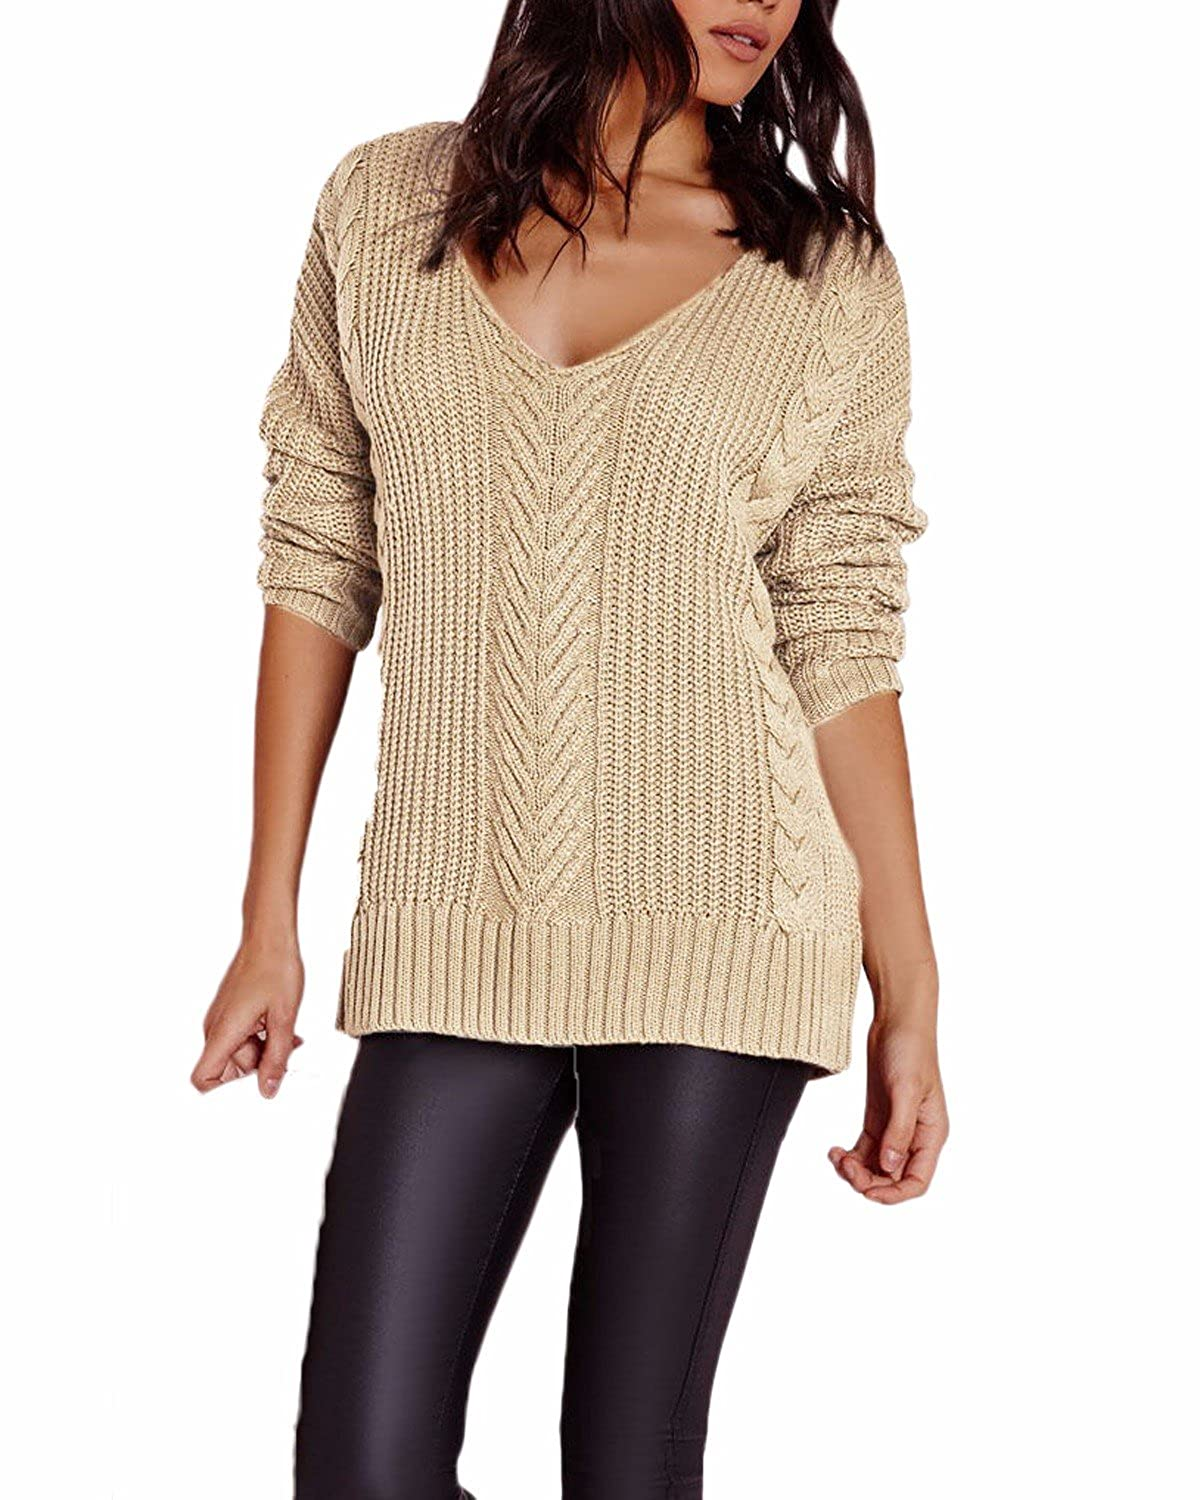 Auxo Women Casual V Neck Long Sleeve Hollow Pullover Knitted Sweater Tops Jumper